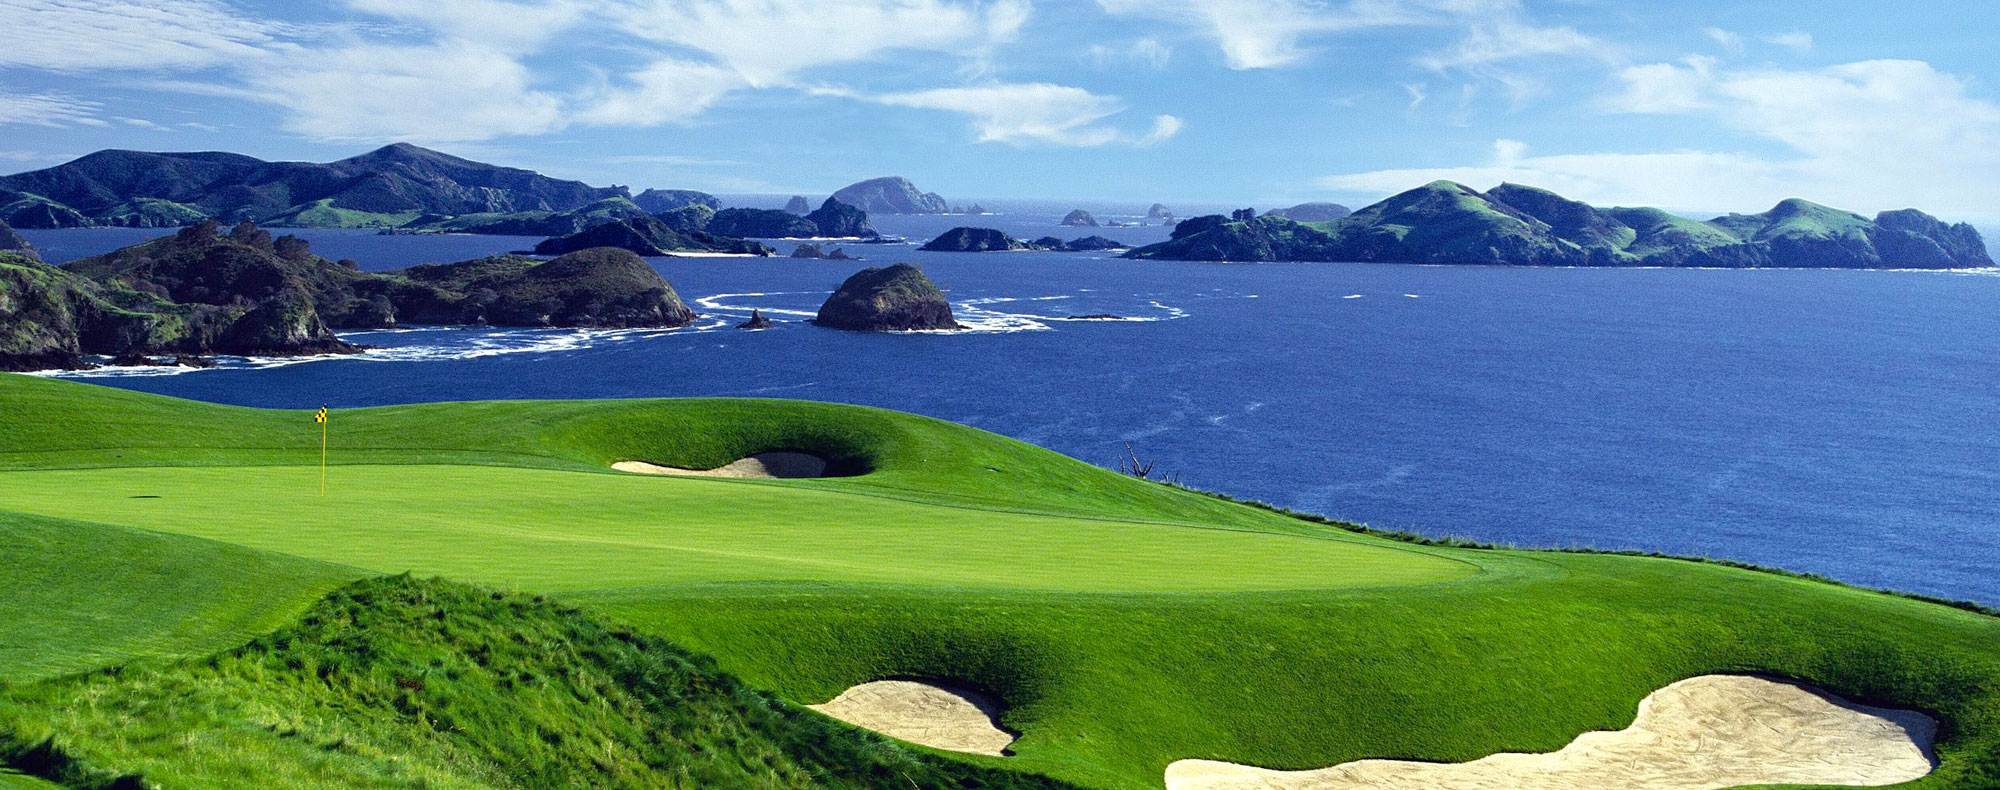 Golf at Kauri Cliffs - pic courtesy Eagle's Nest